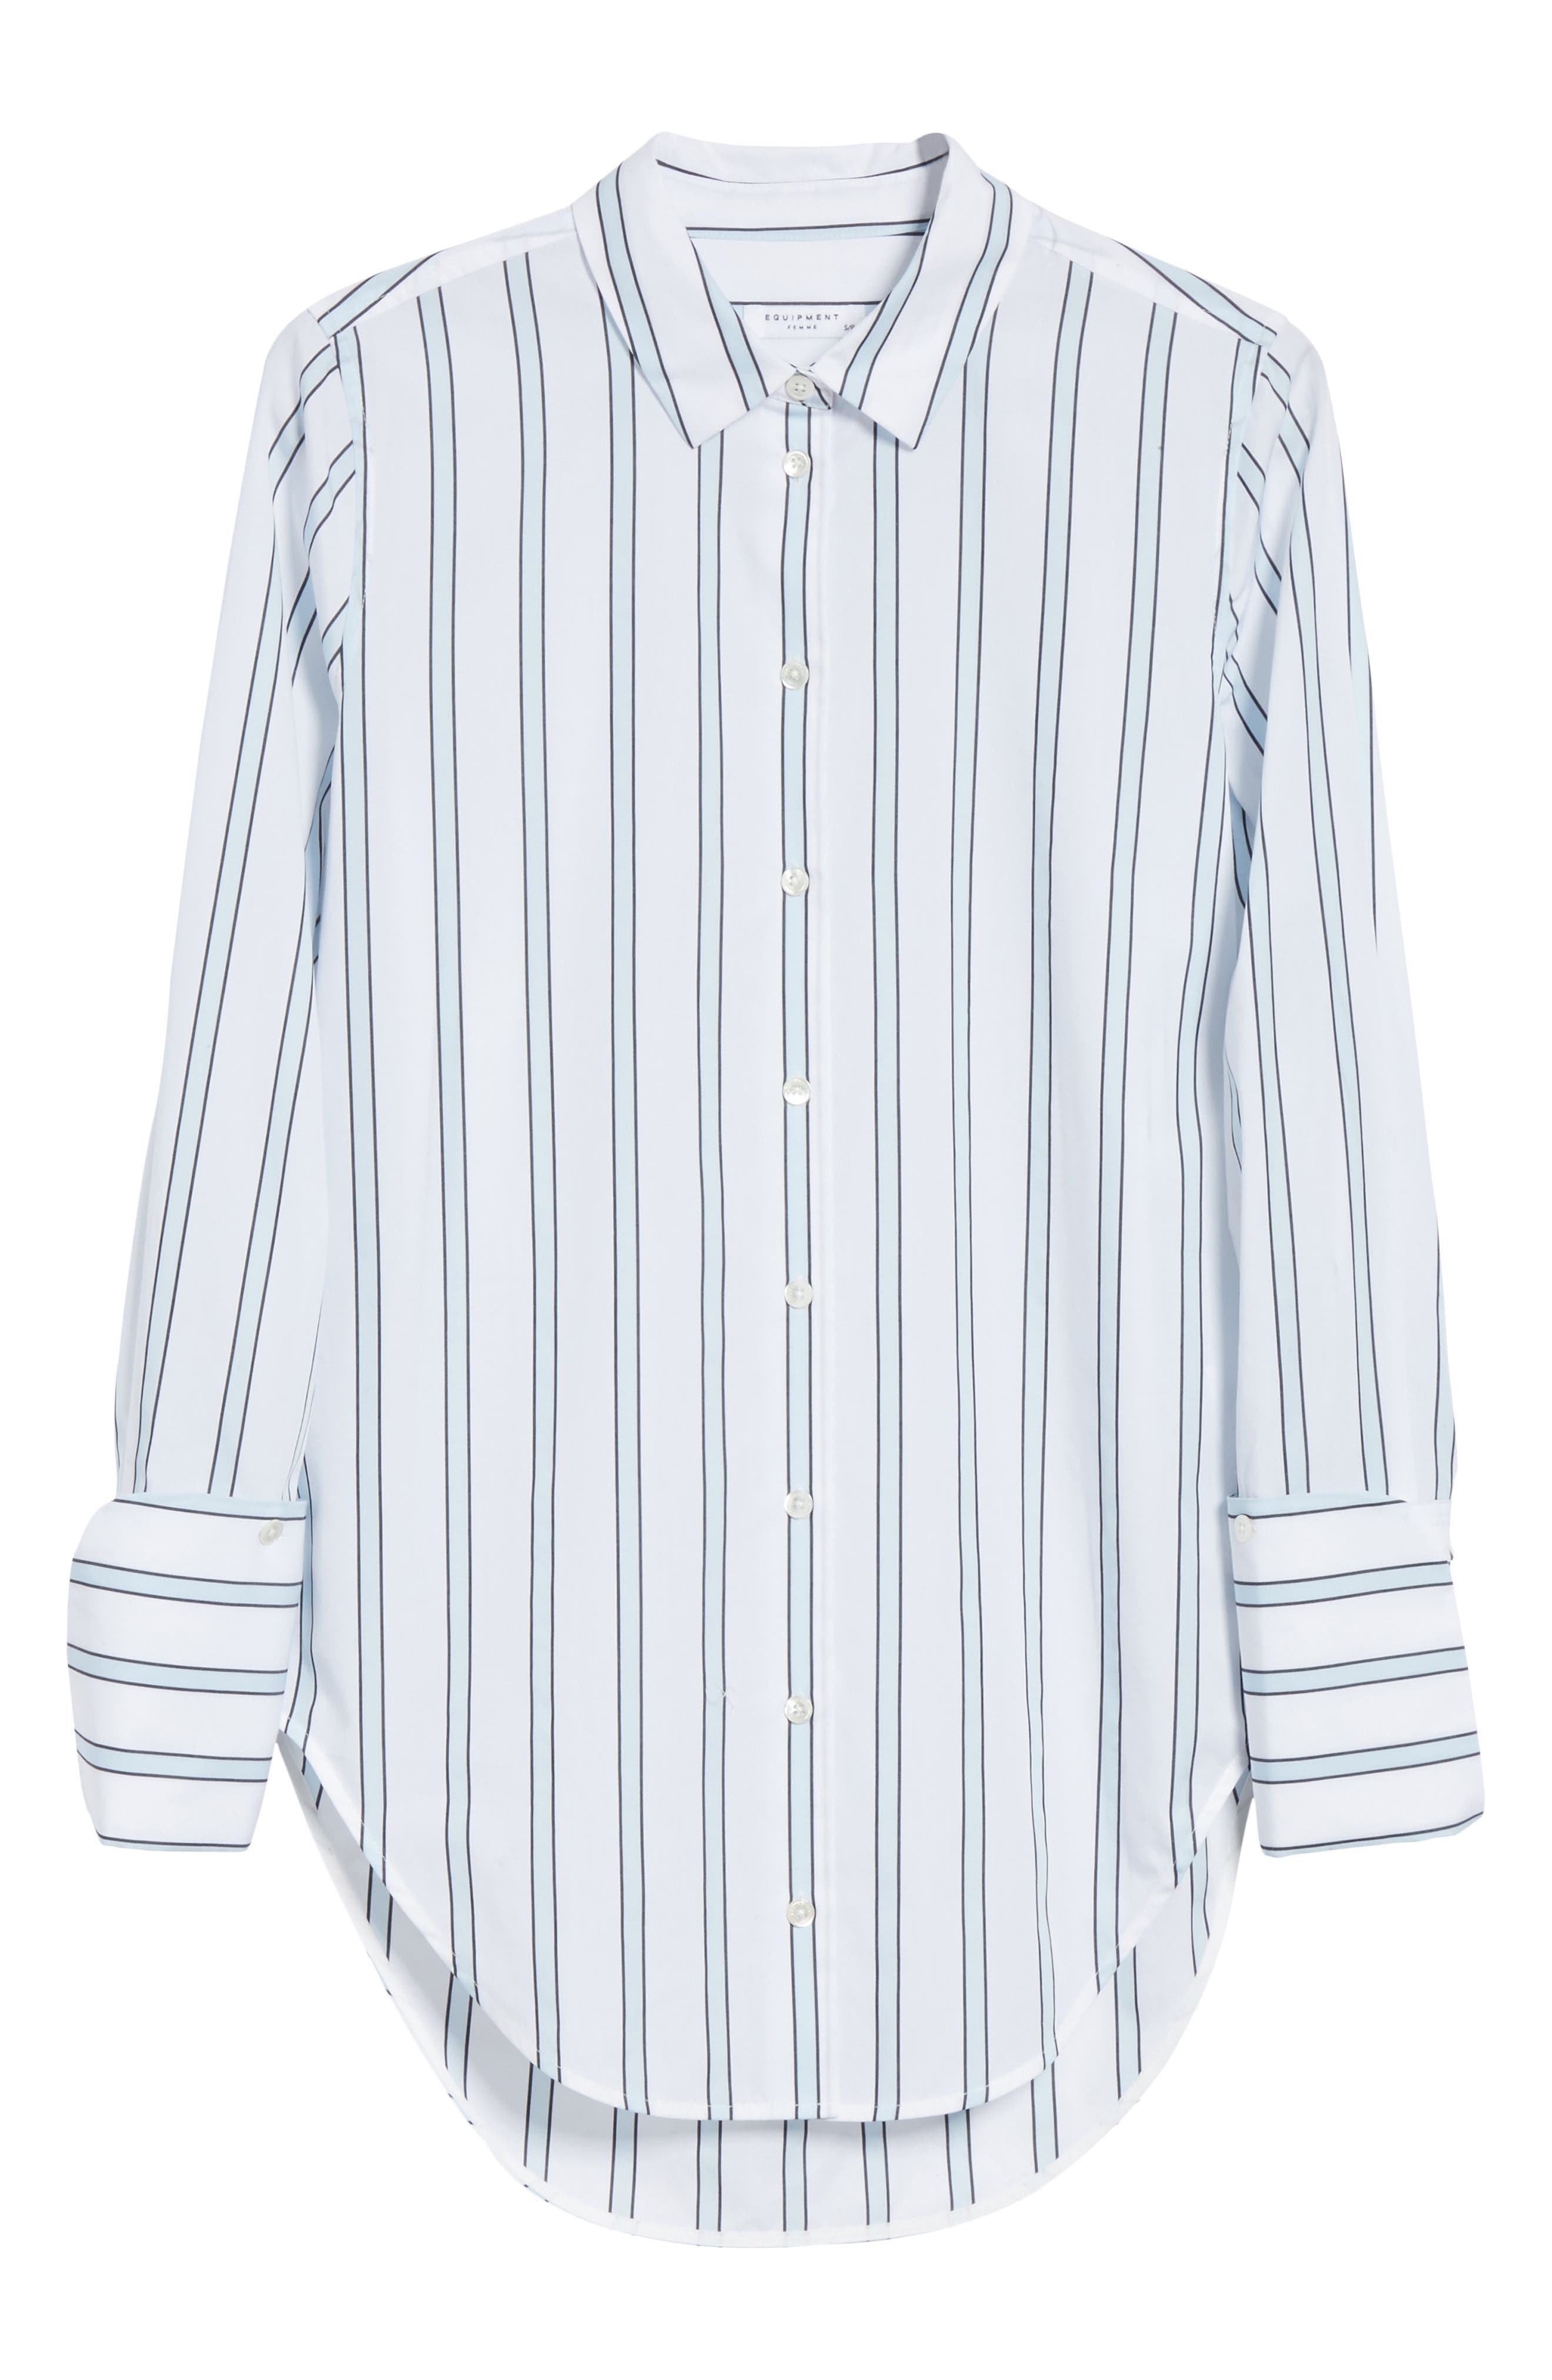 Essential Neopolitan Cuff Stripe Shirt,                             Alternate thumbnail 7, color,                             Bright White-Cool Breeze